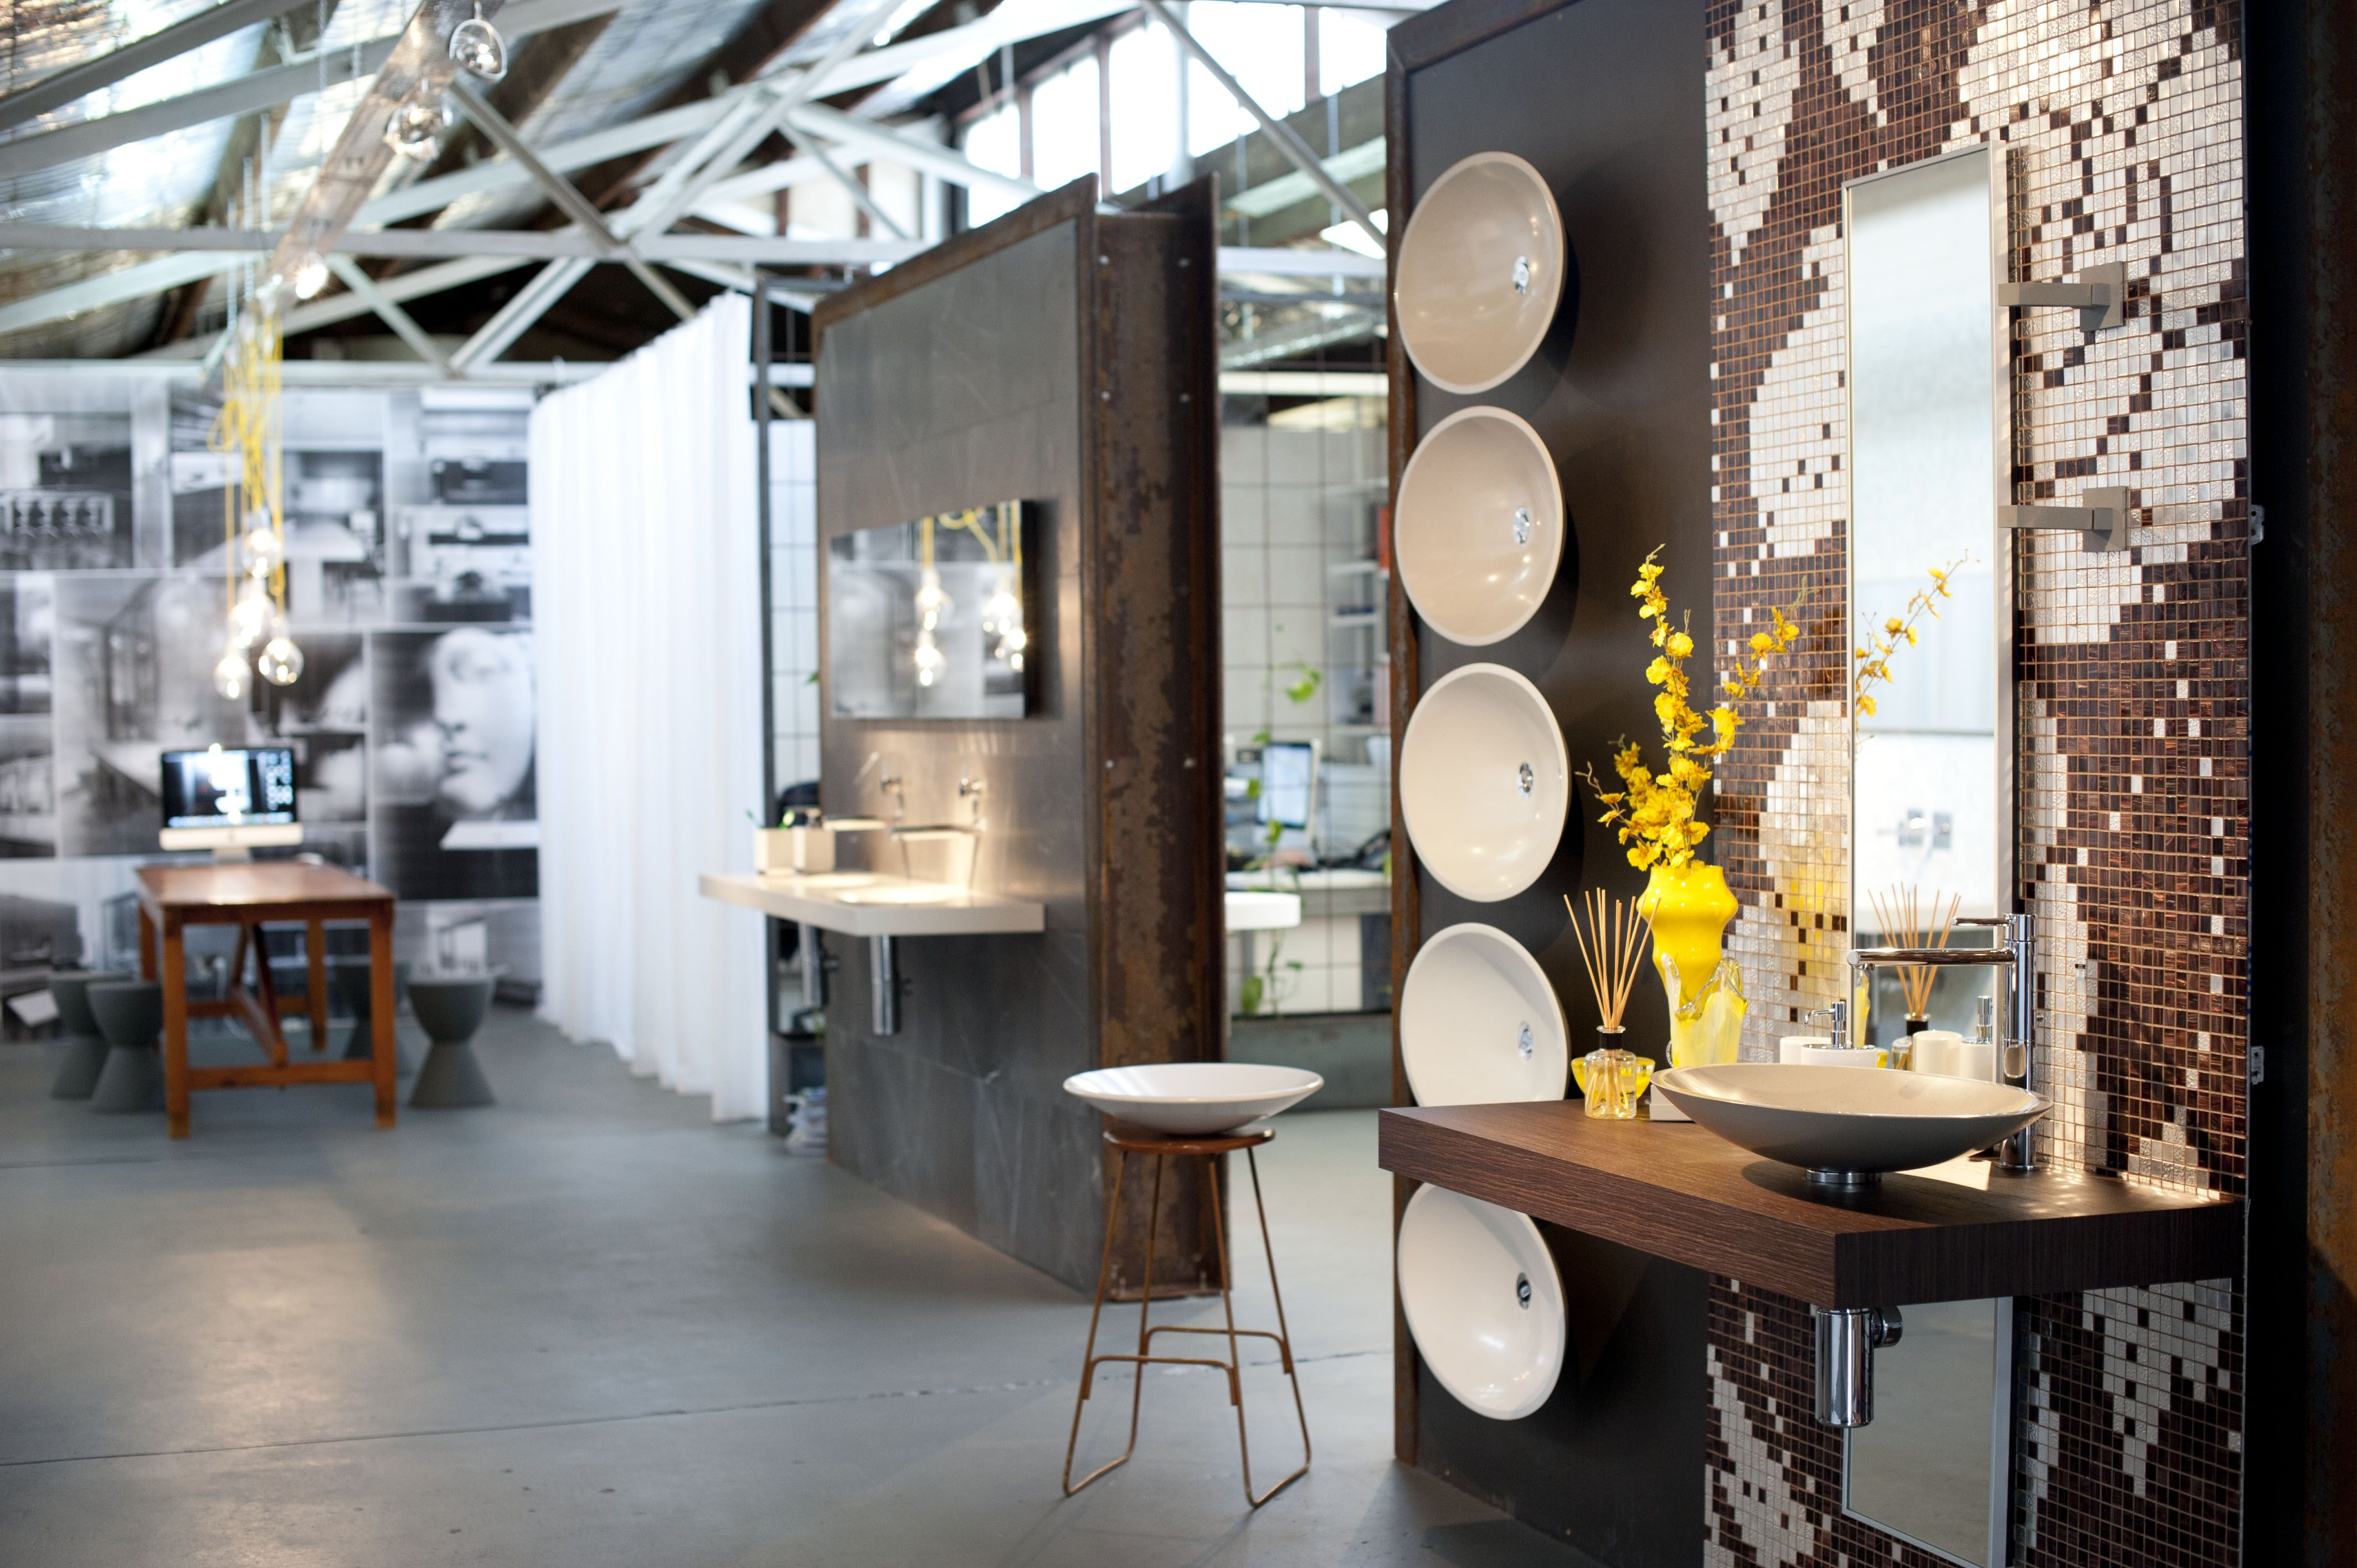 Australiau0027s Leading Boutique Bathroom Manufacturer Minosa, Has Opened Their  New Showroom And De.